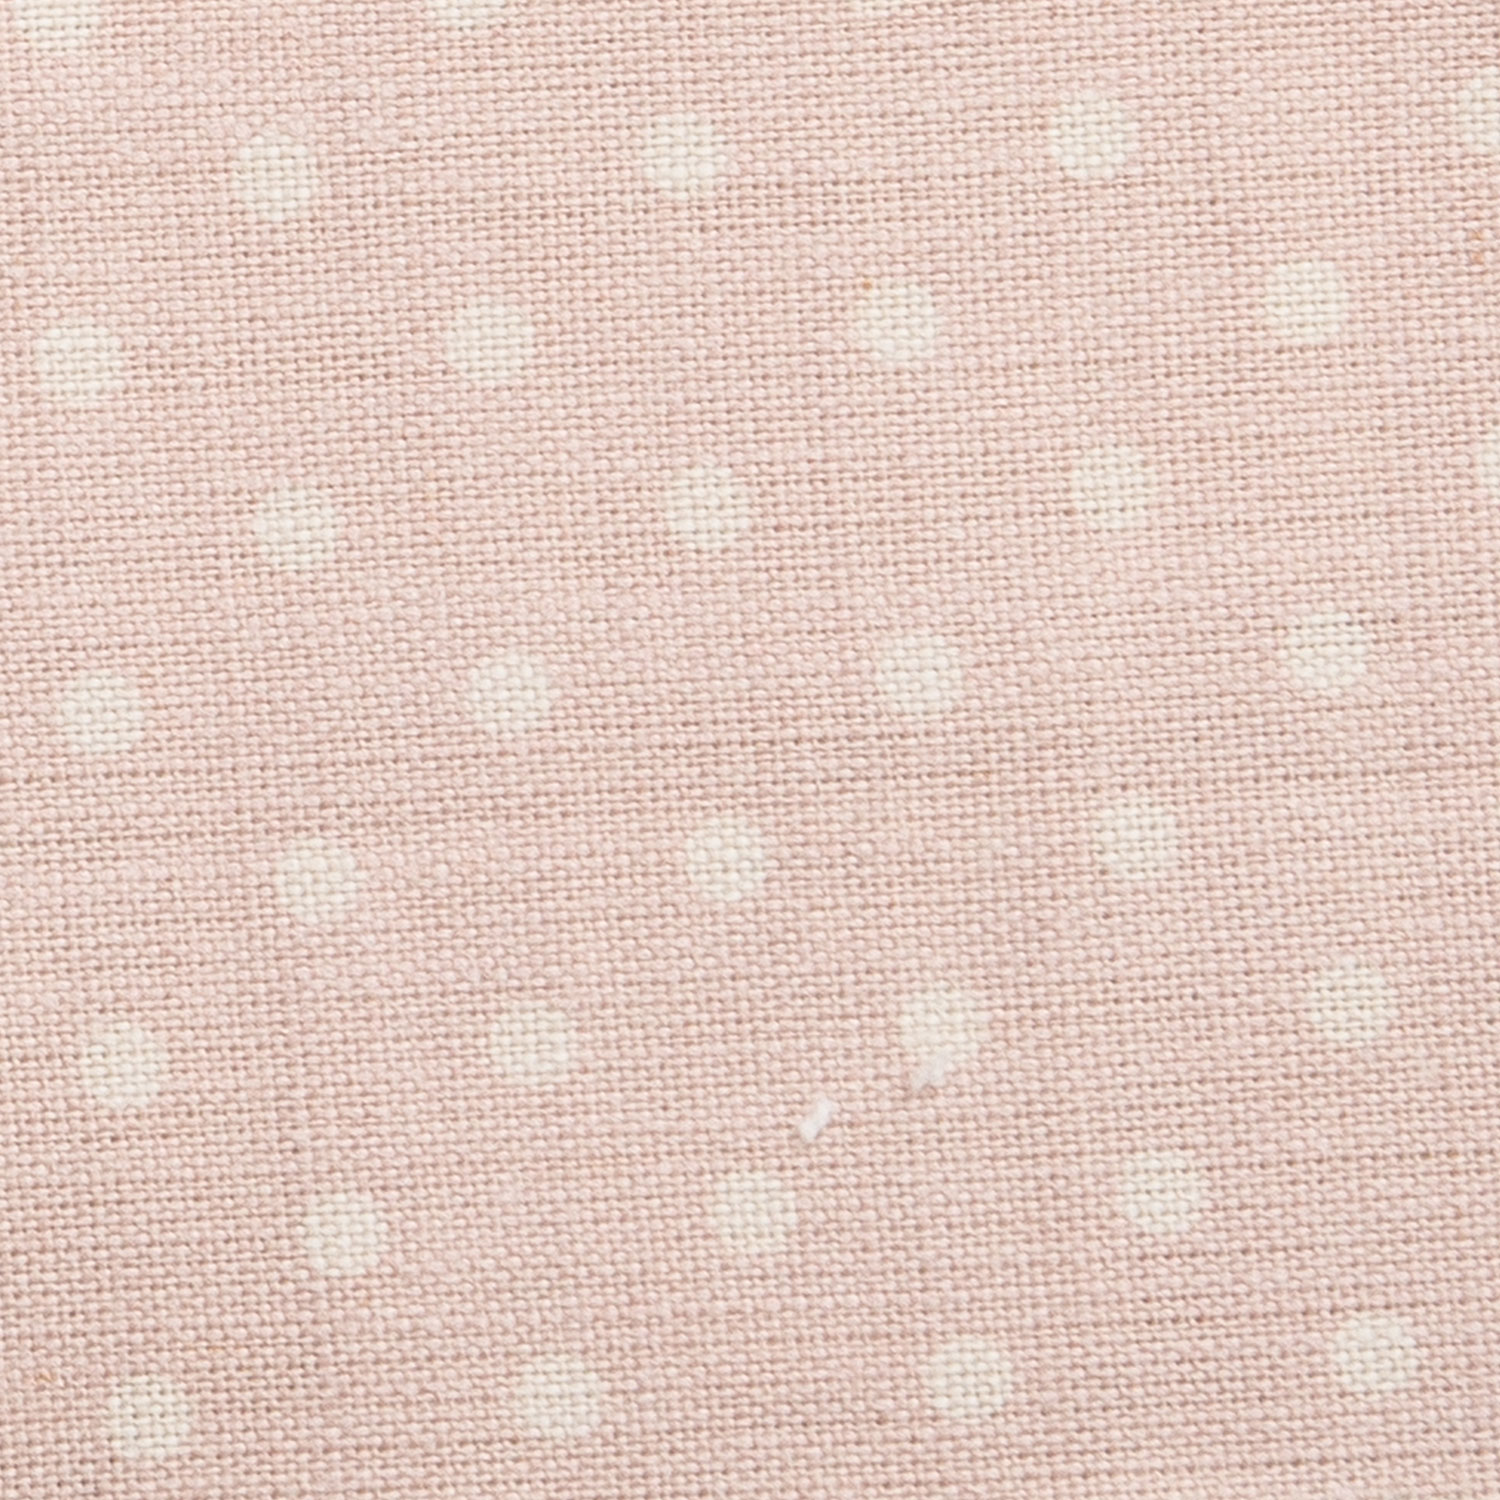 Polka, Pale Pink Icing Background